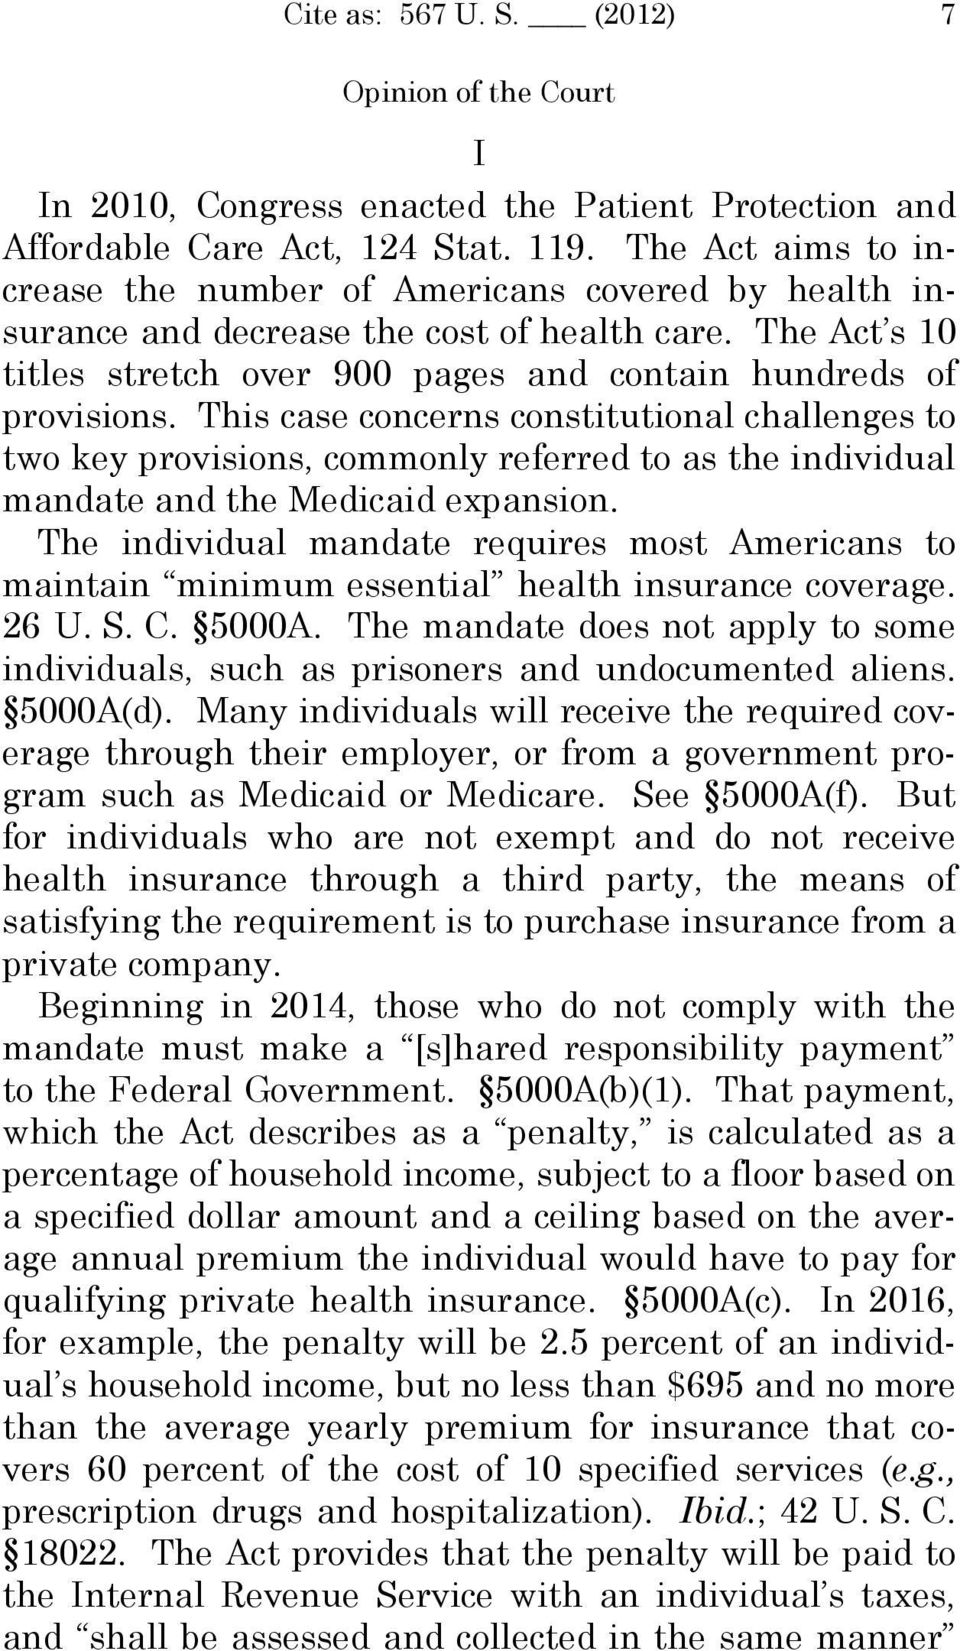 This case concerns constitutional challenges to two key provisions, commonly referred to as the individual mandate and the Medicaid expansion.